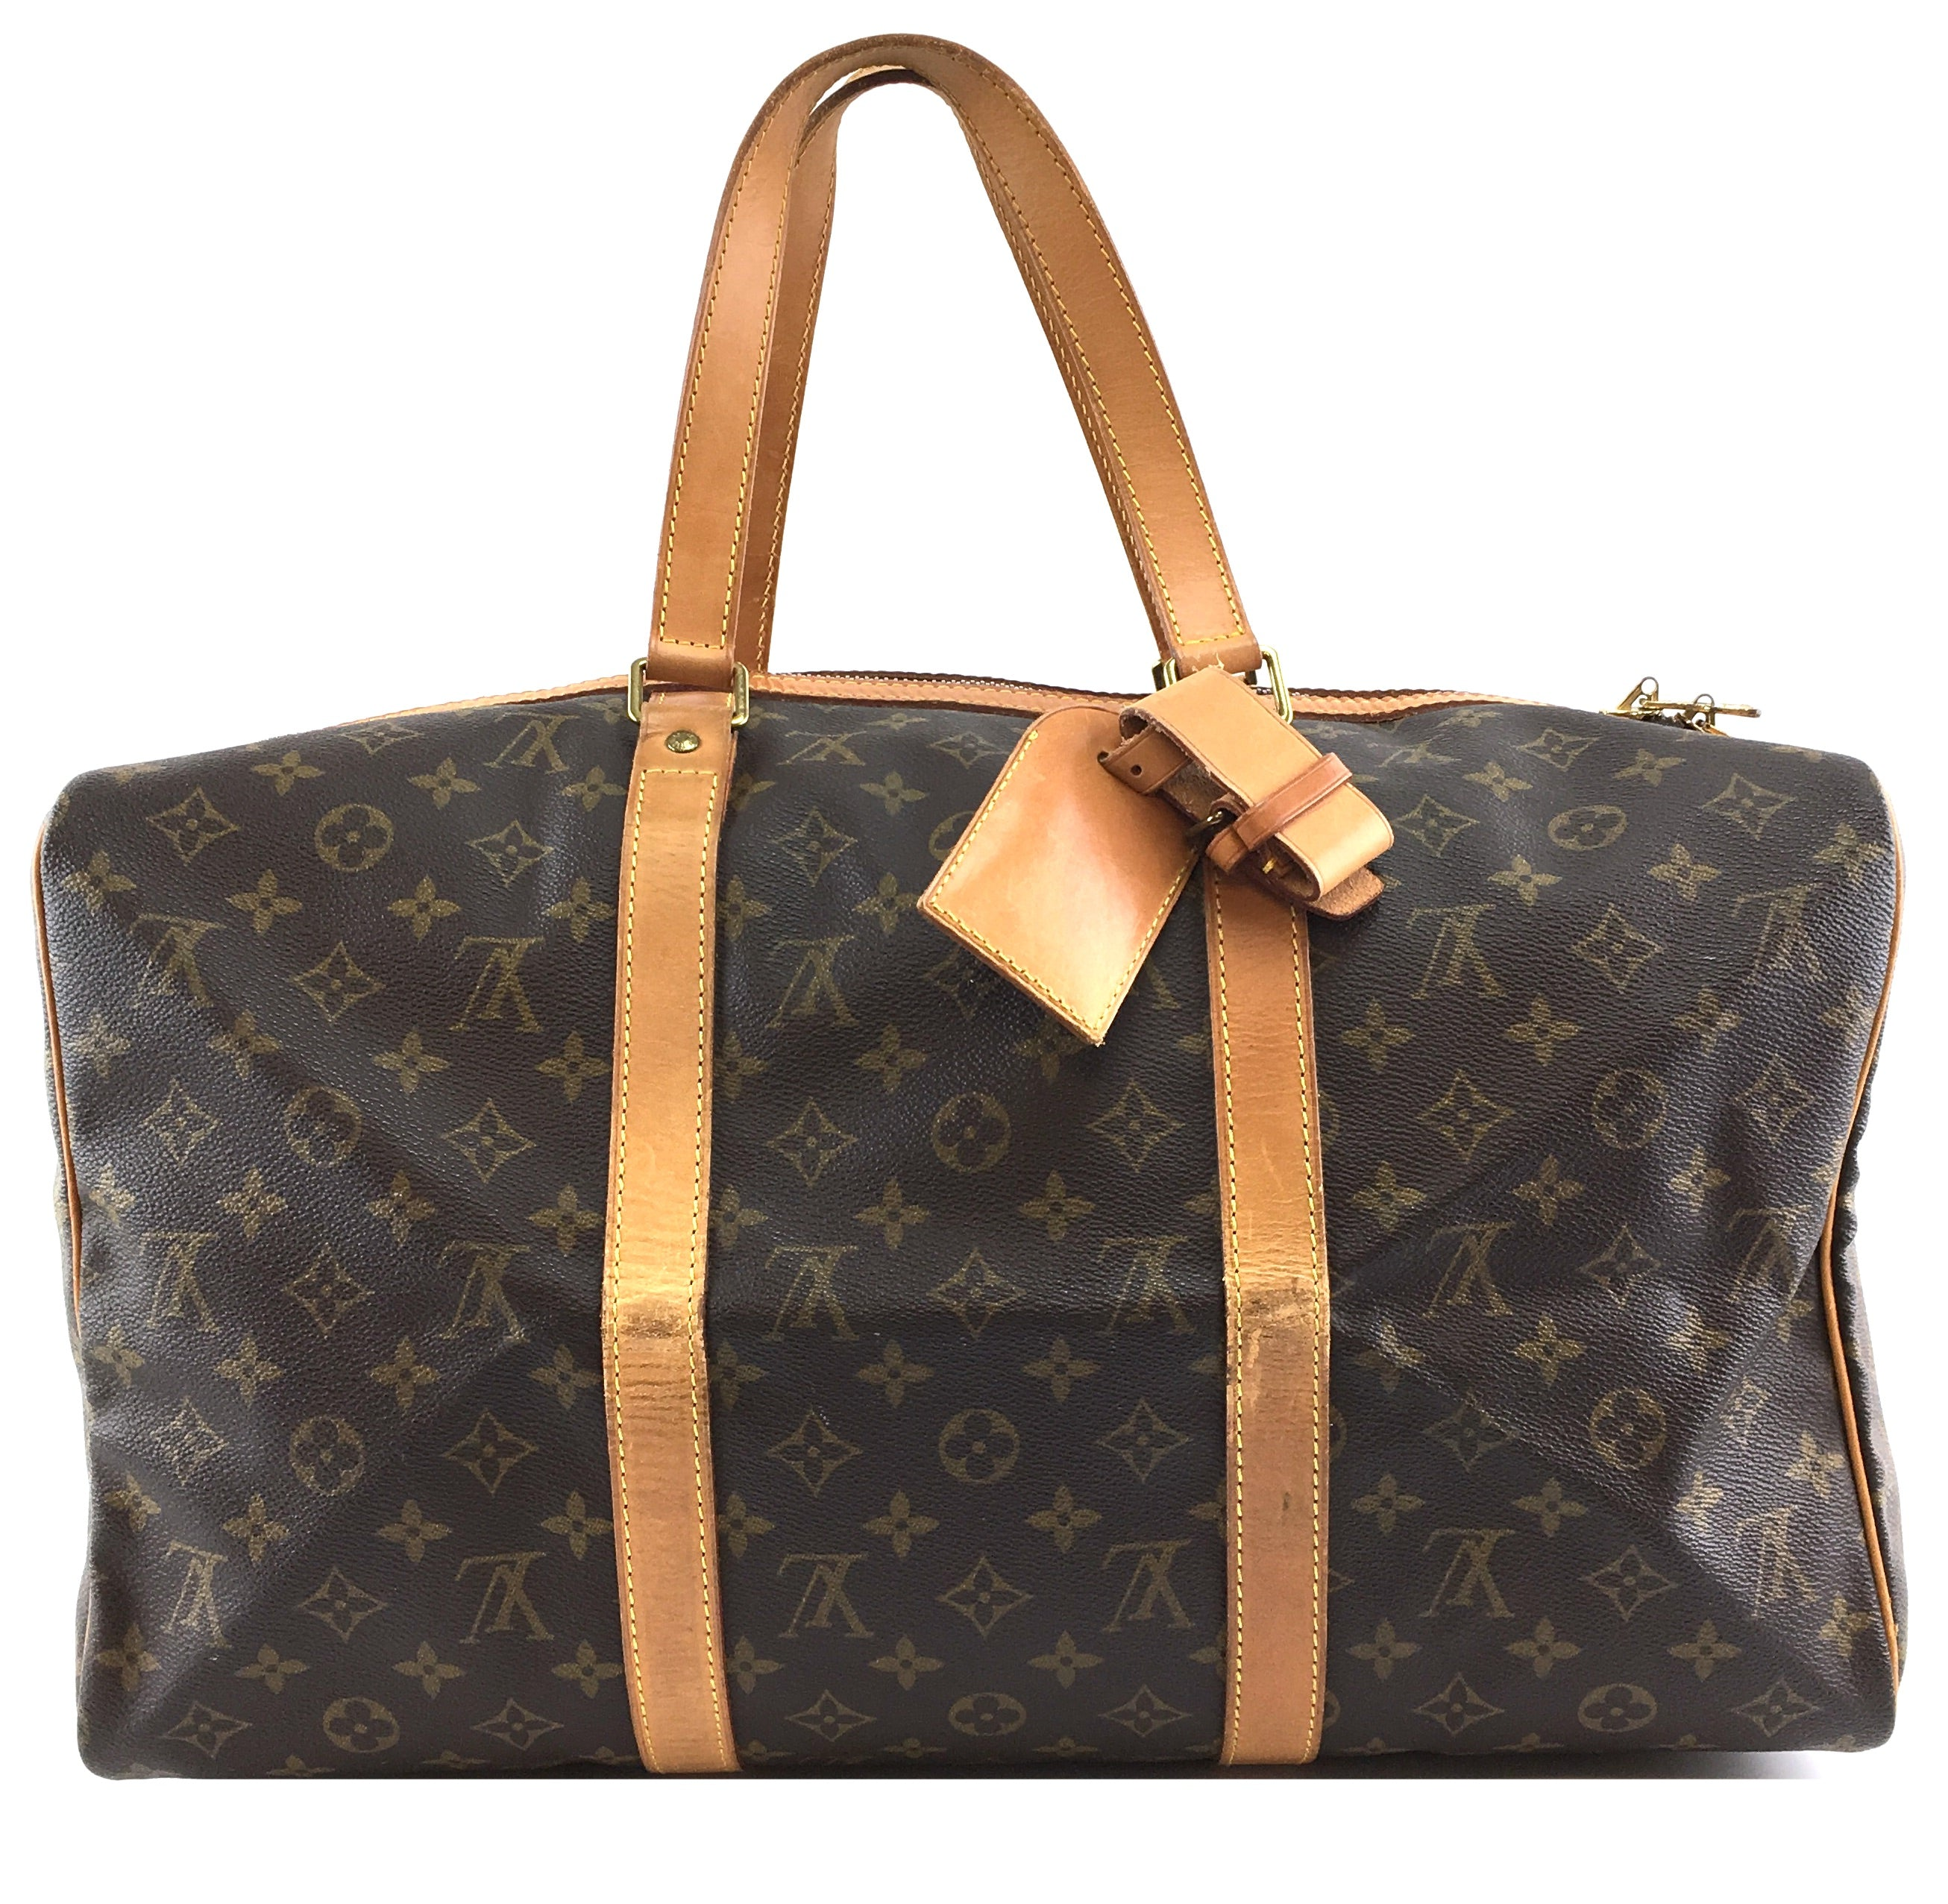 Louis Vuitton Sac Souple 45 Monogram Canvas